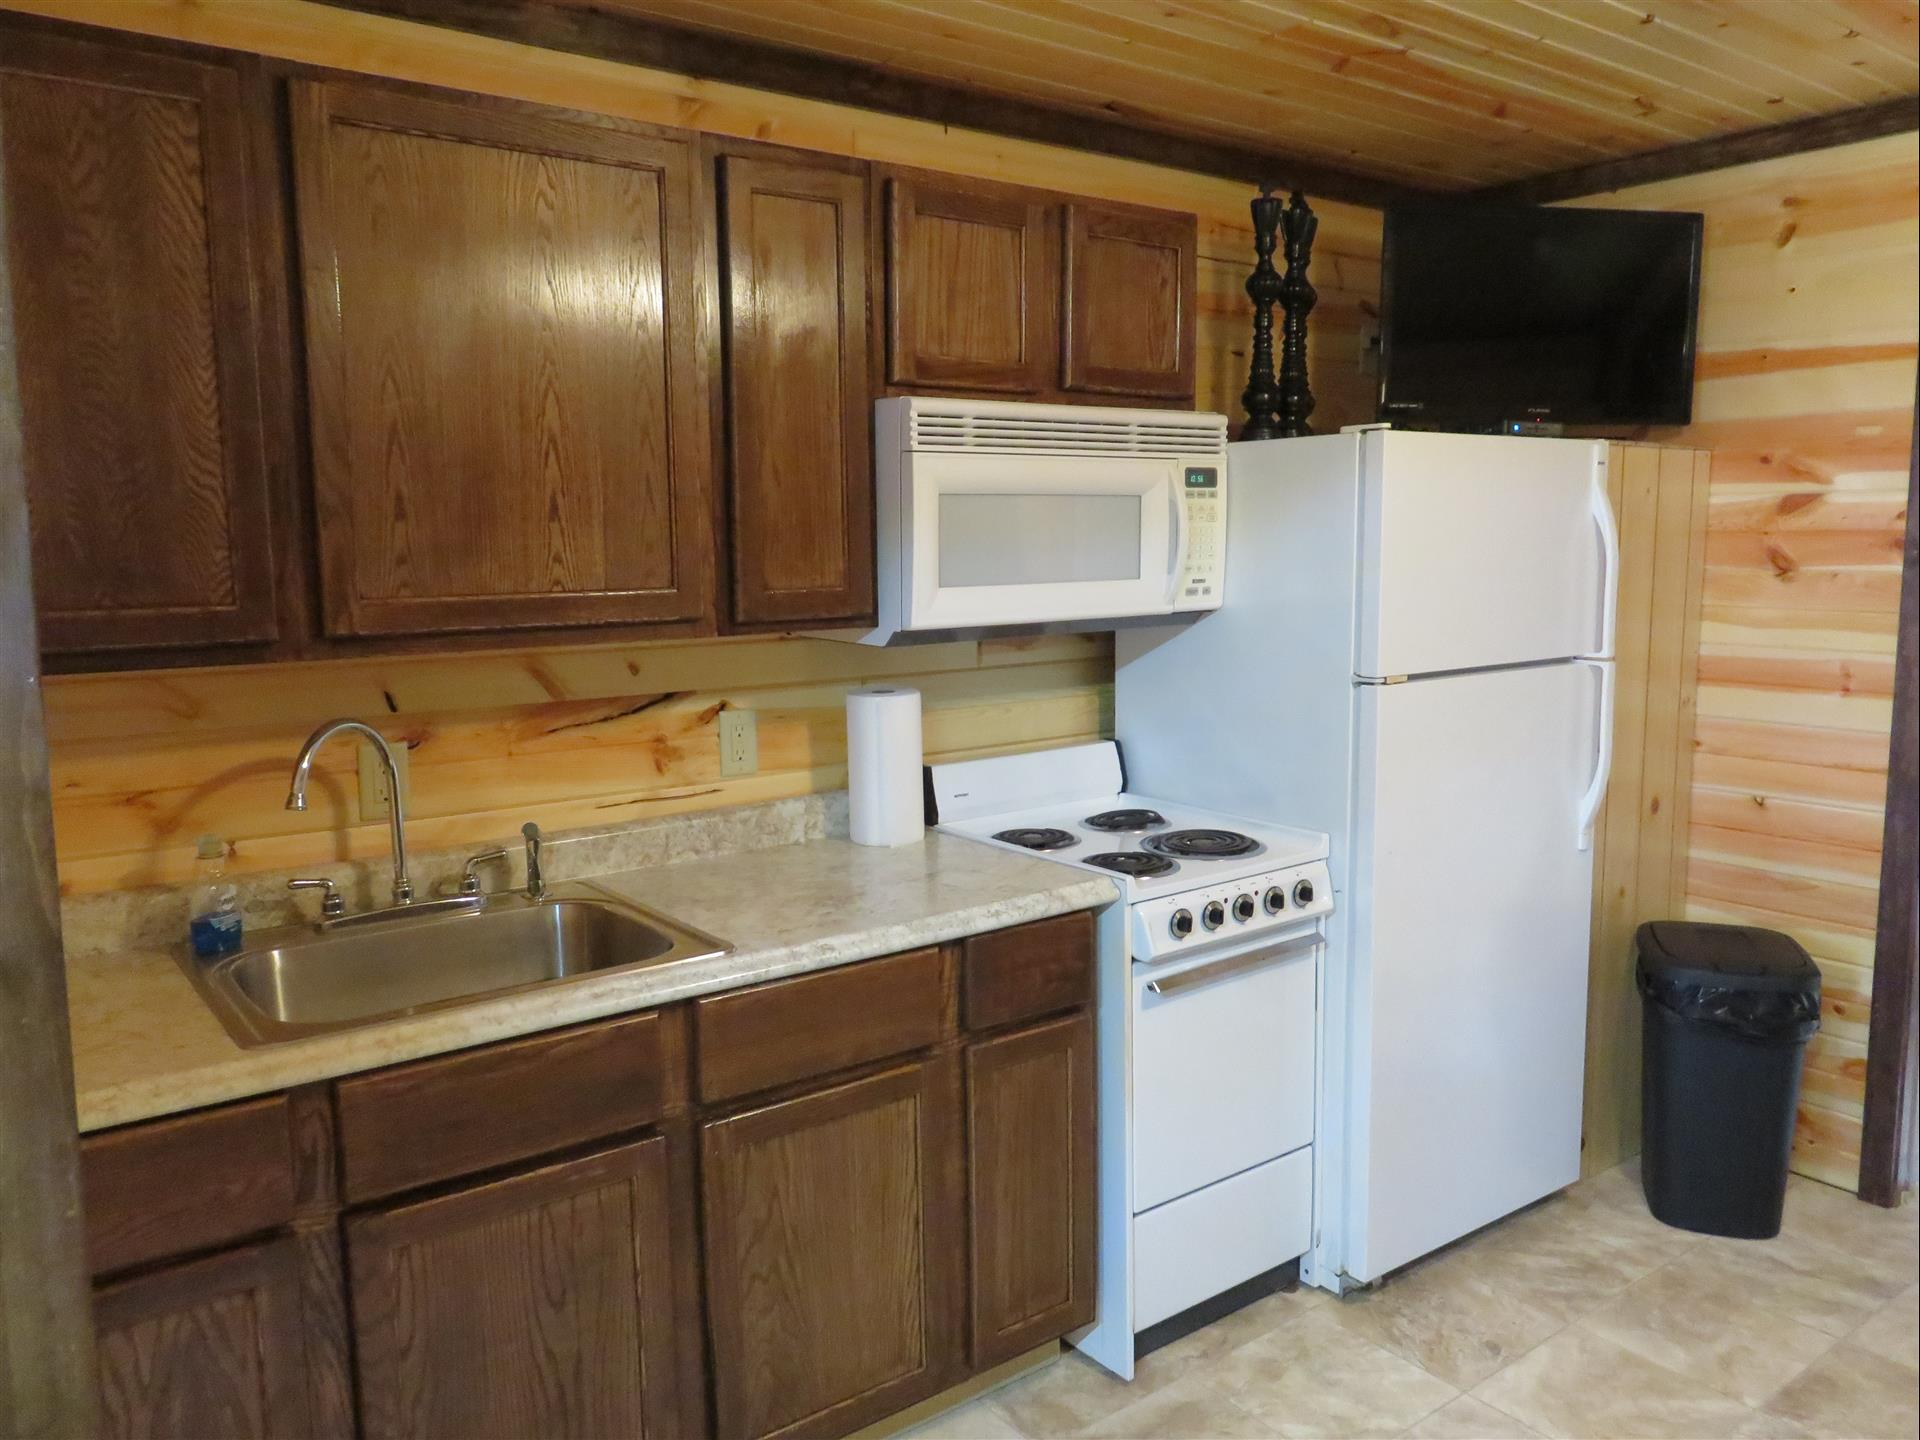 2016-11-16-cabin-interior-kitchen-appliances-cabinets-sink-and ...